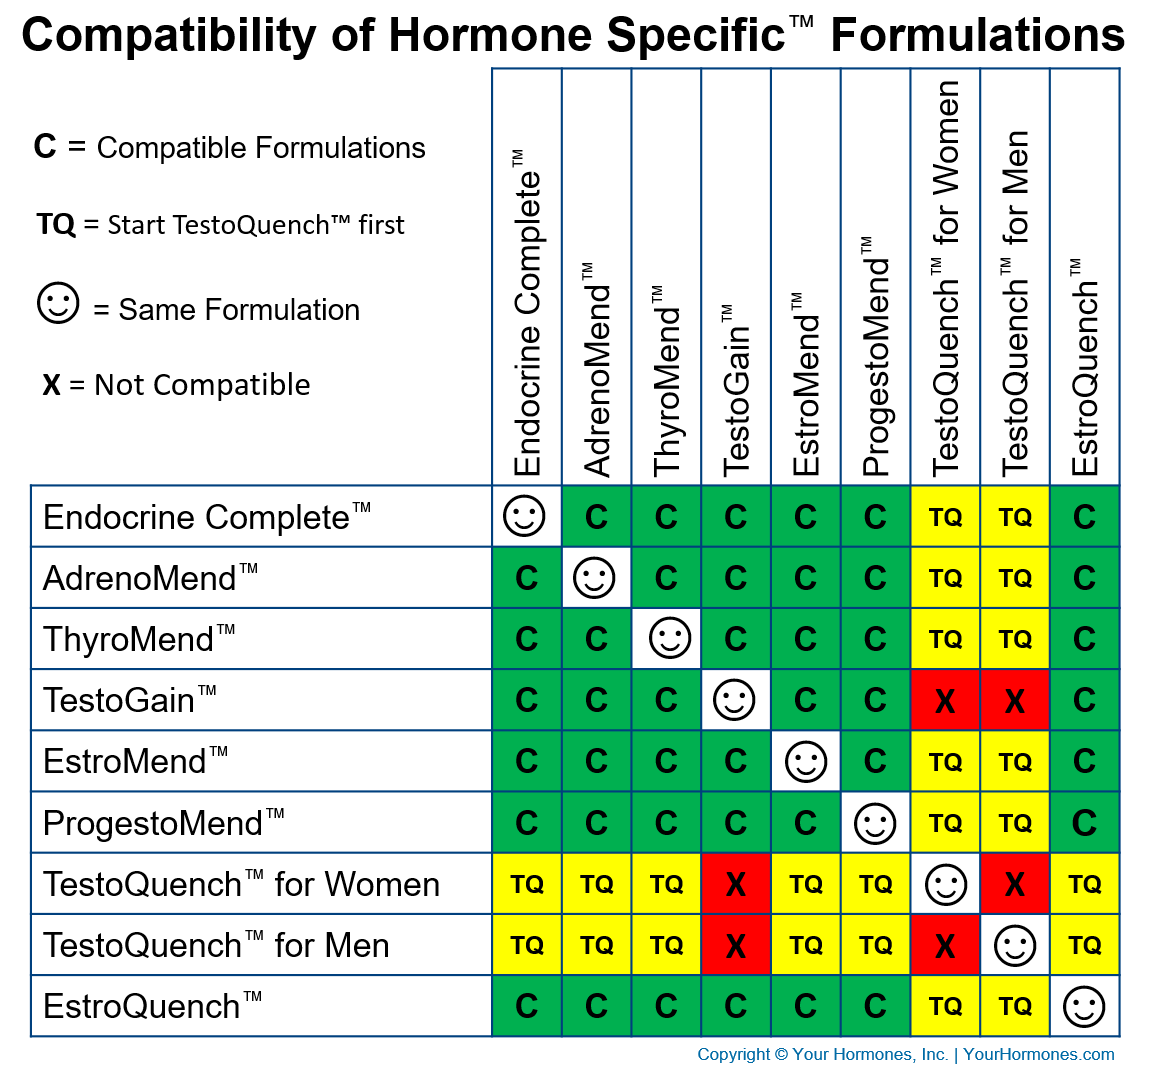 Compatibility of the Hormone Specific™ Formulations allows many formulations to be used together.